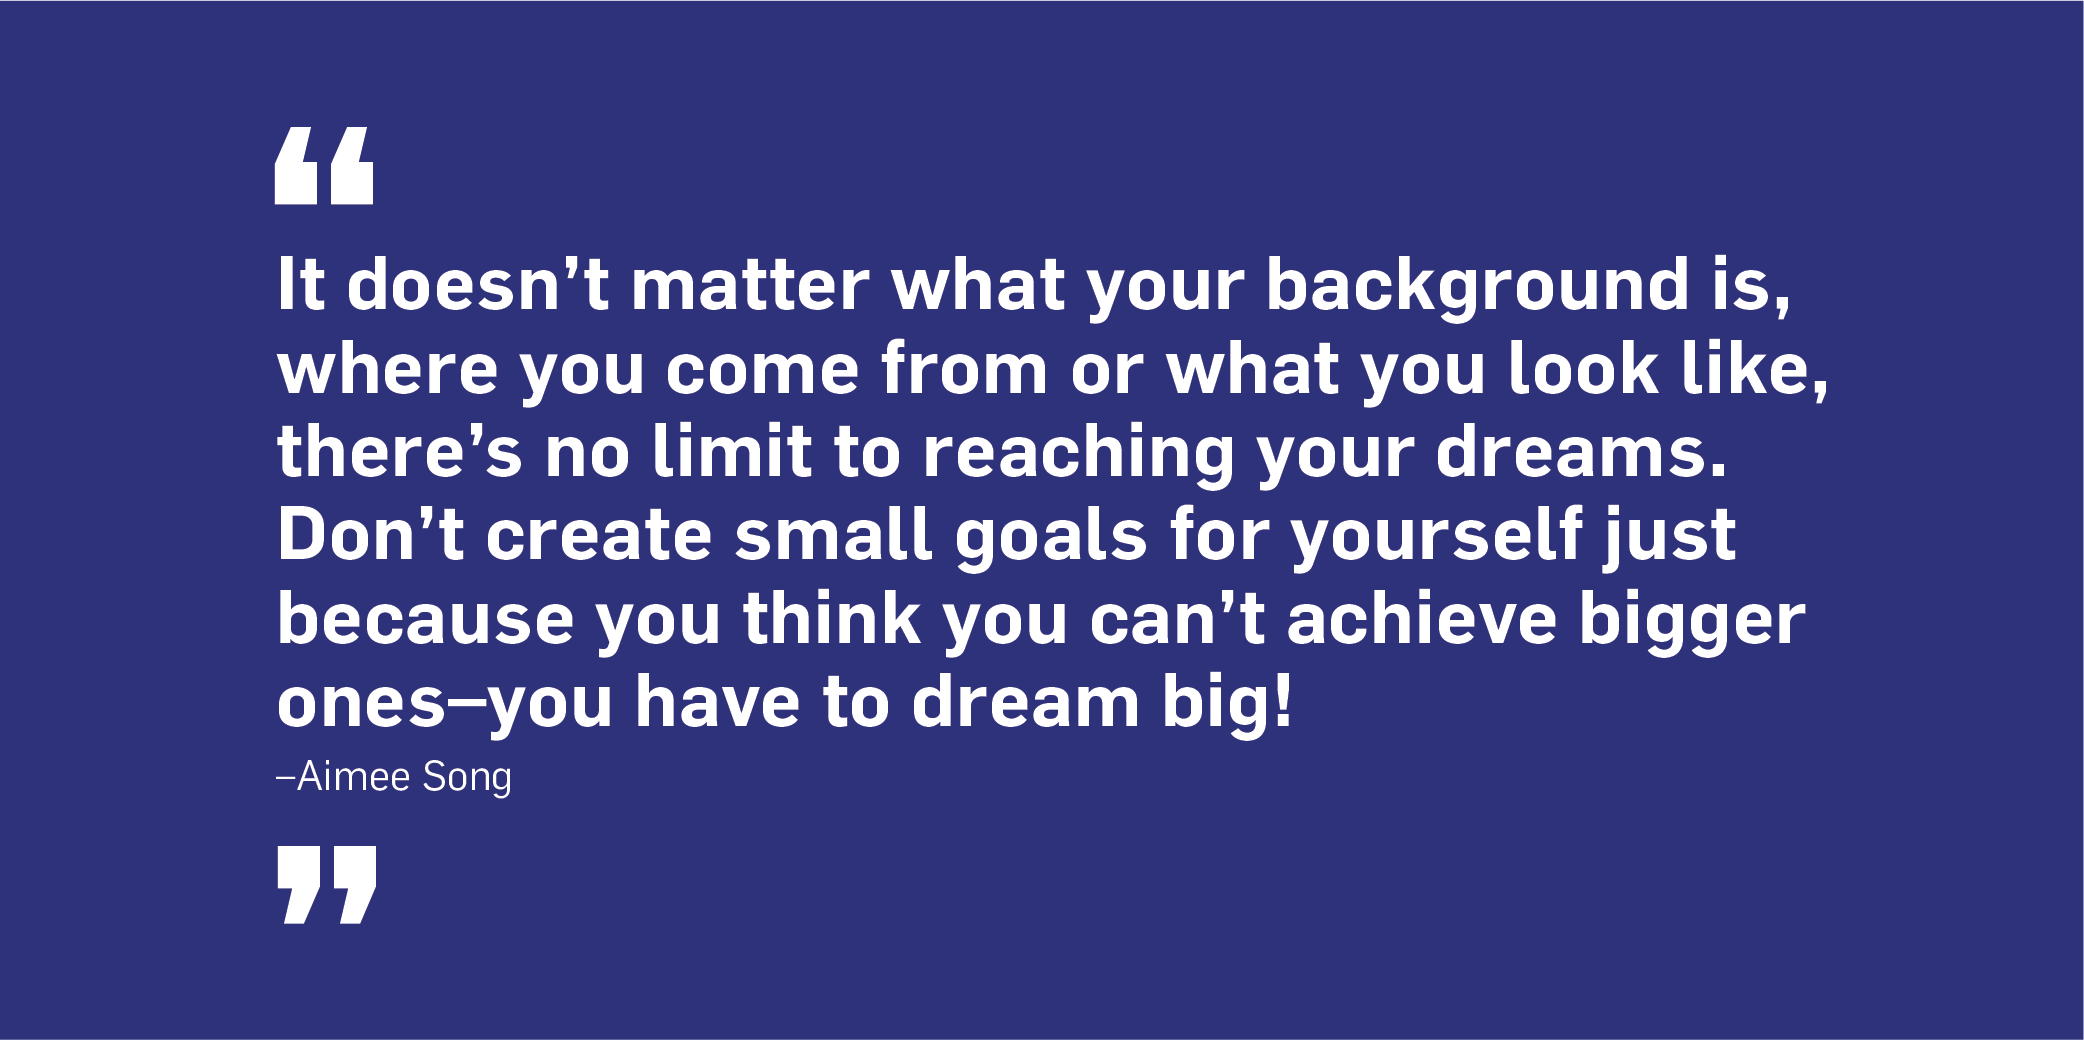 Quote. It doesn't matter what your background is, where you come from or what you look like, there's no limit to reaching your dreams. Don't create small goals for yourself just because you think you can't achieve bigger ones – you have to dream big! Unquote. Aimee Song.